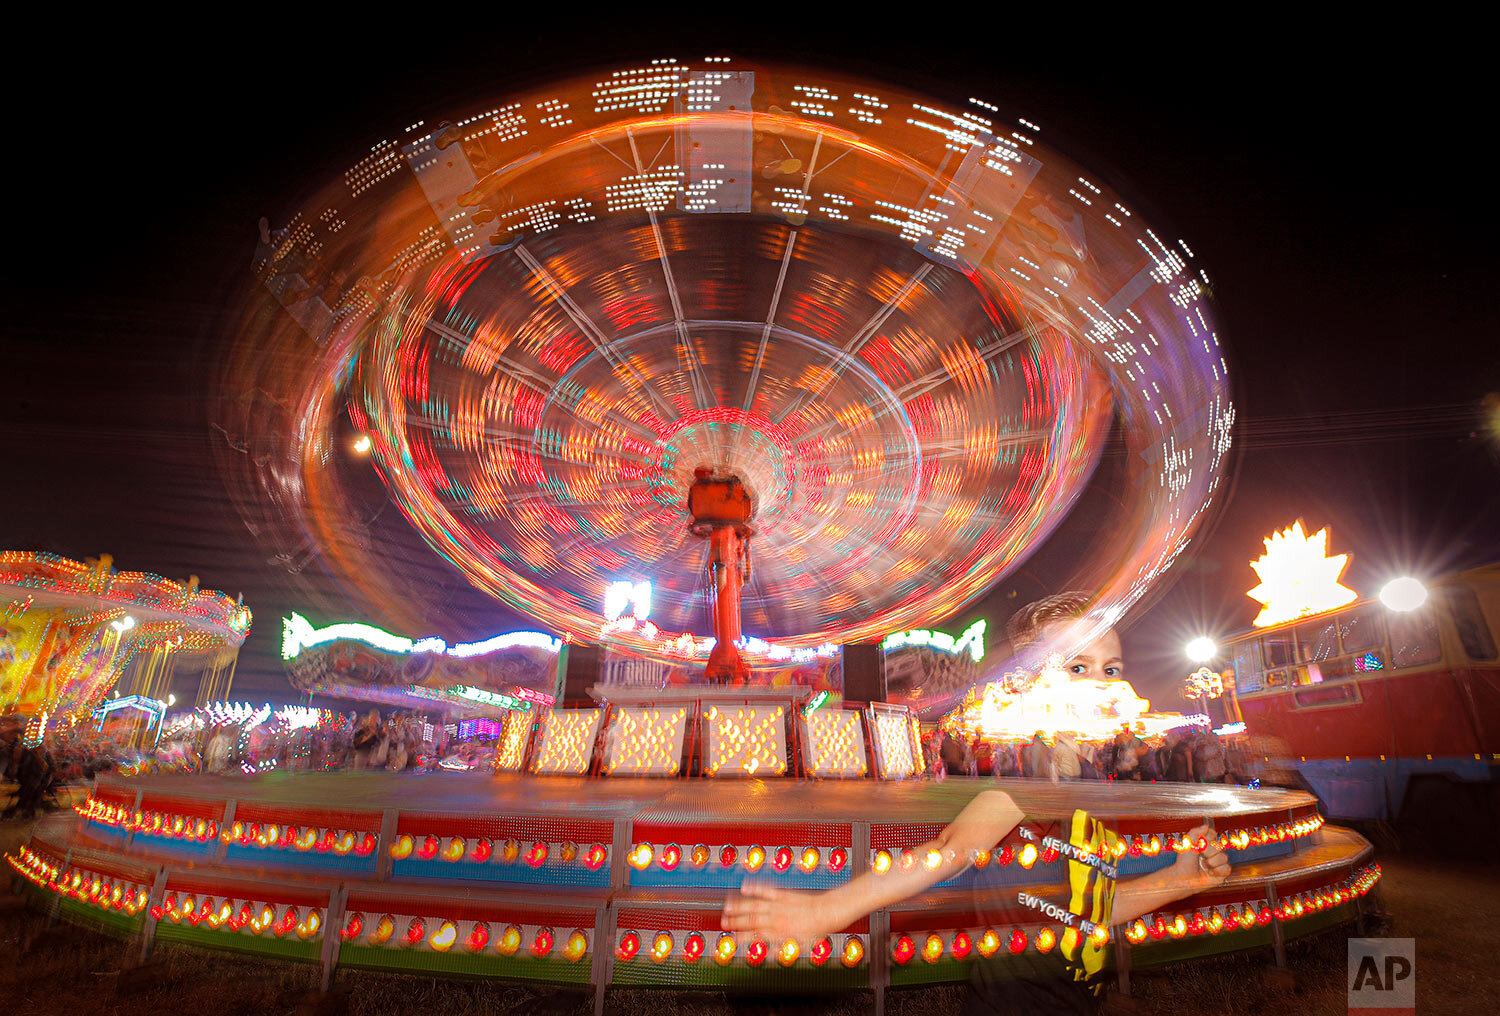 A child runs by a merry go round at an autumn fair in Rosiorii de Vede, southern Romania, Sept. 7, 2019. (AP Photo/Vadim Ghirda)